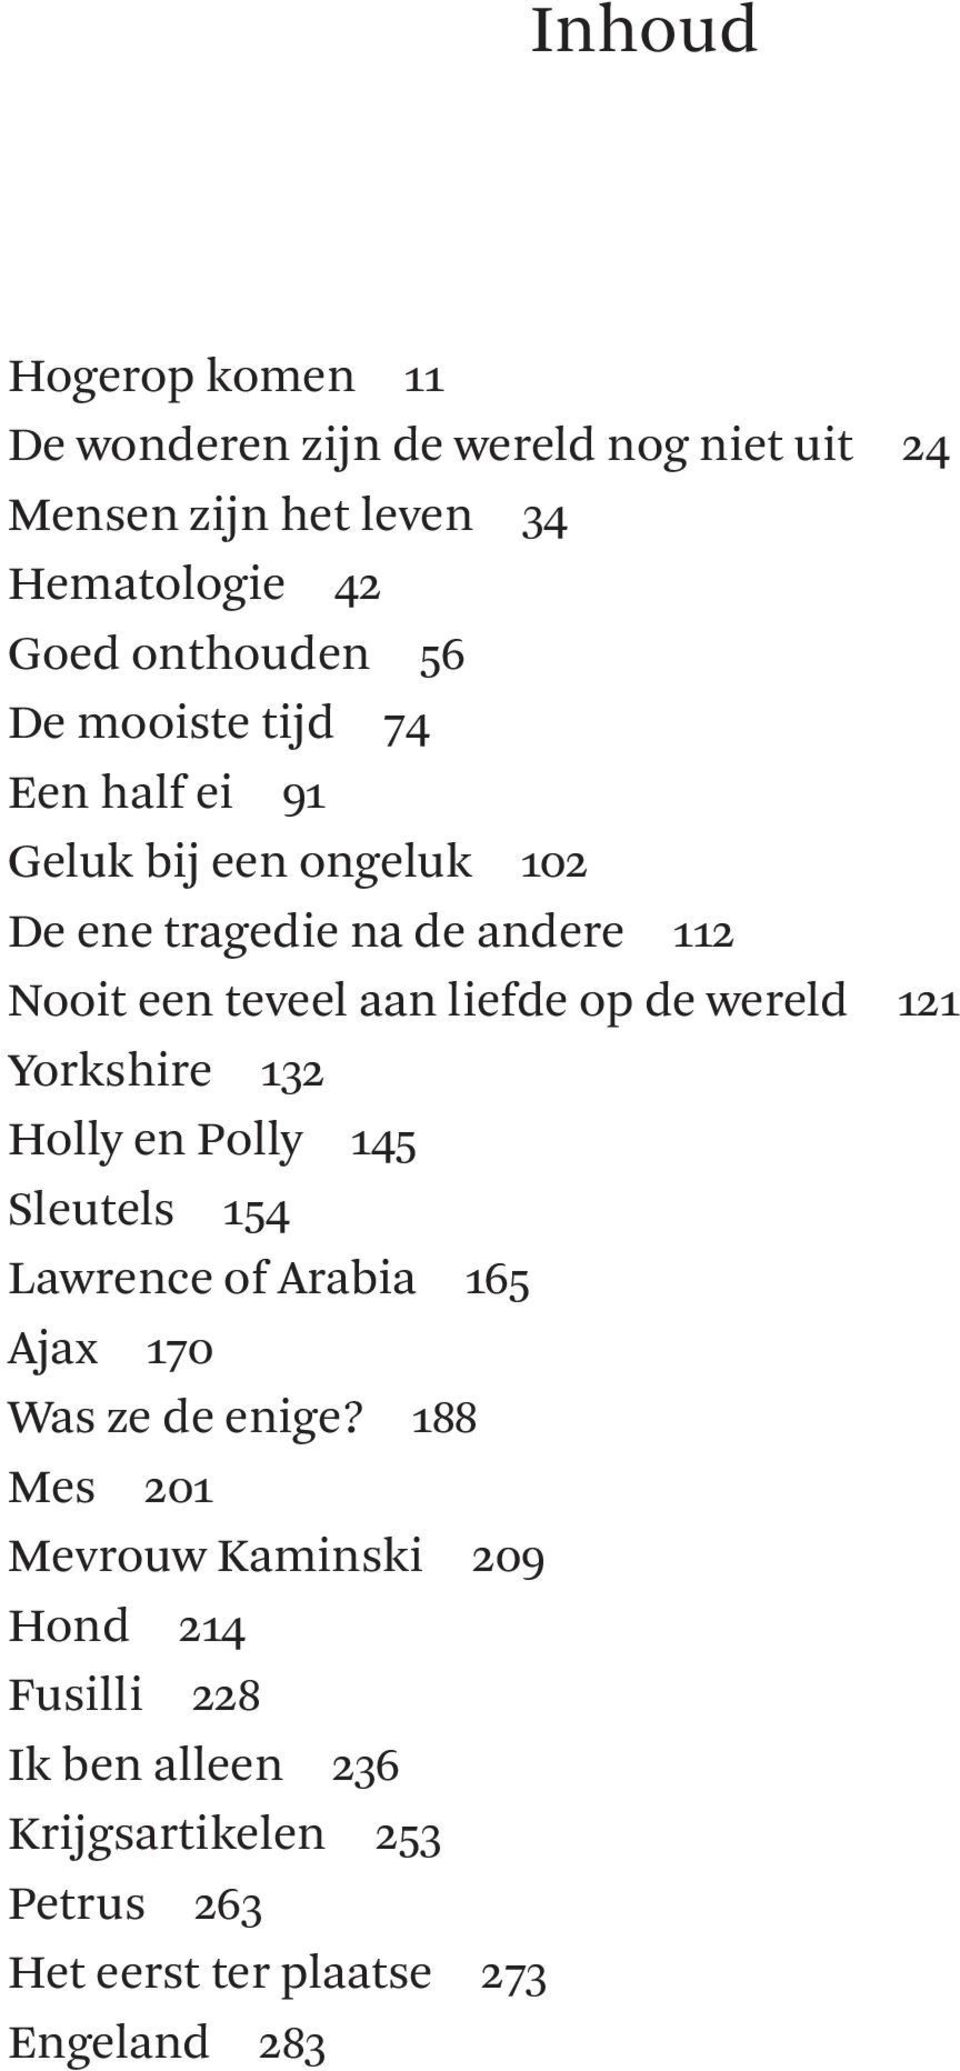 de wereld 121 Yorkshire 132 Holly en Polly 145 Sleutels 154 Lawrence of Arabia 165 Ajax 170 Was ze de enige?